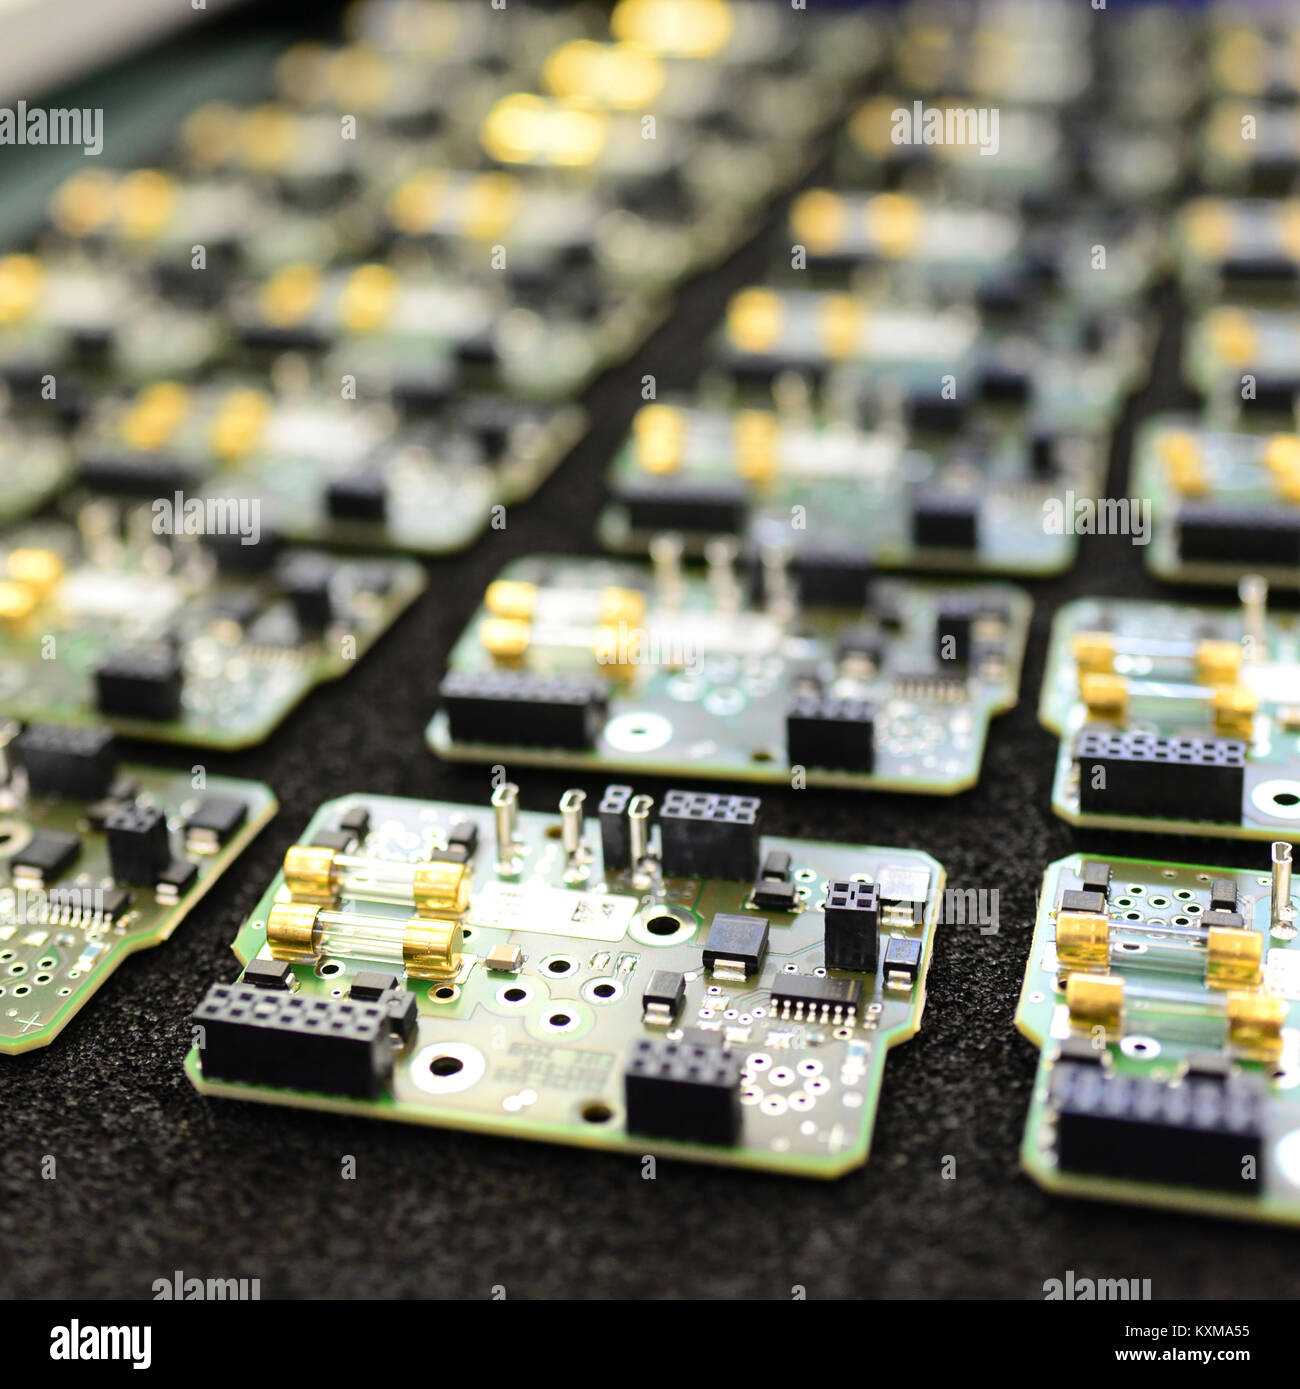 production and assembly of microelectronics in a hi-tech factory - Stock Image